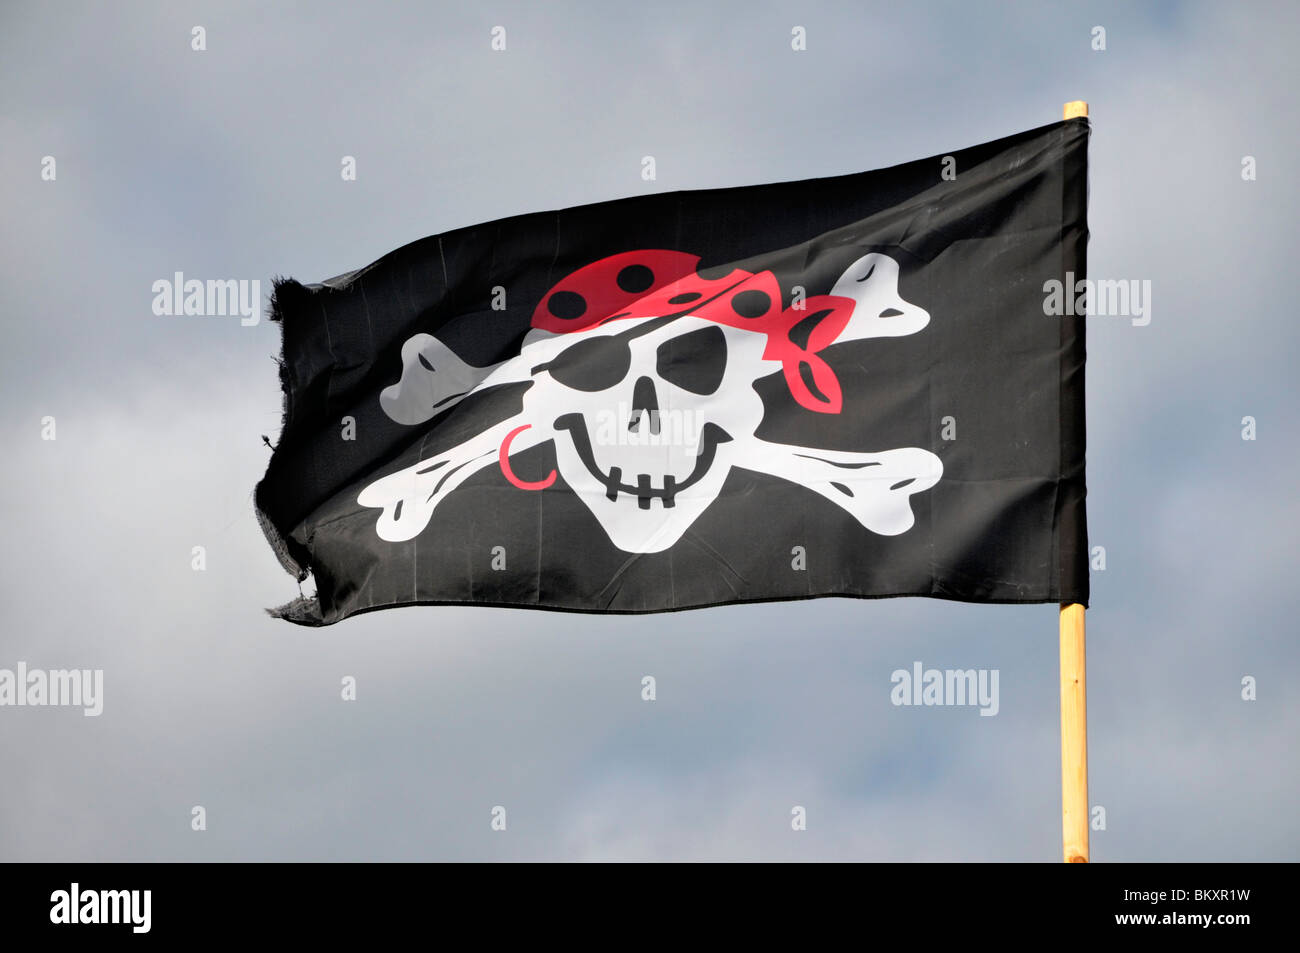 a black pirate skull and cross bone flag flying from a mast. - Stock Image